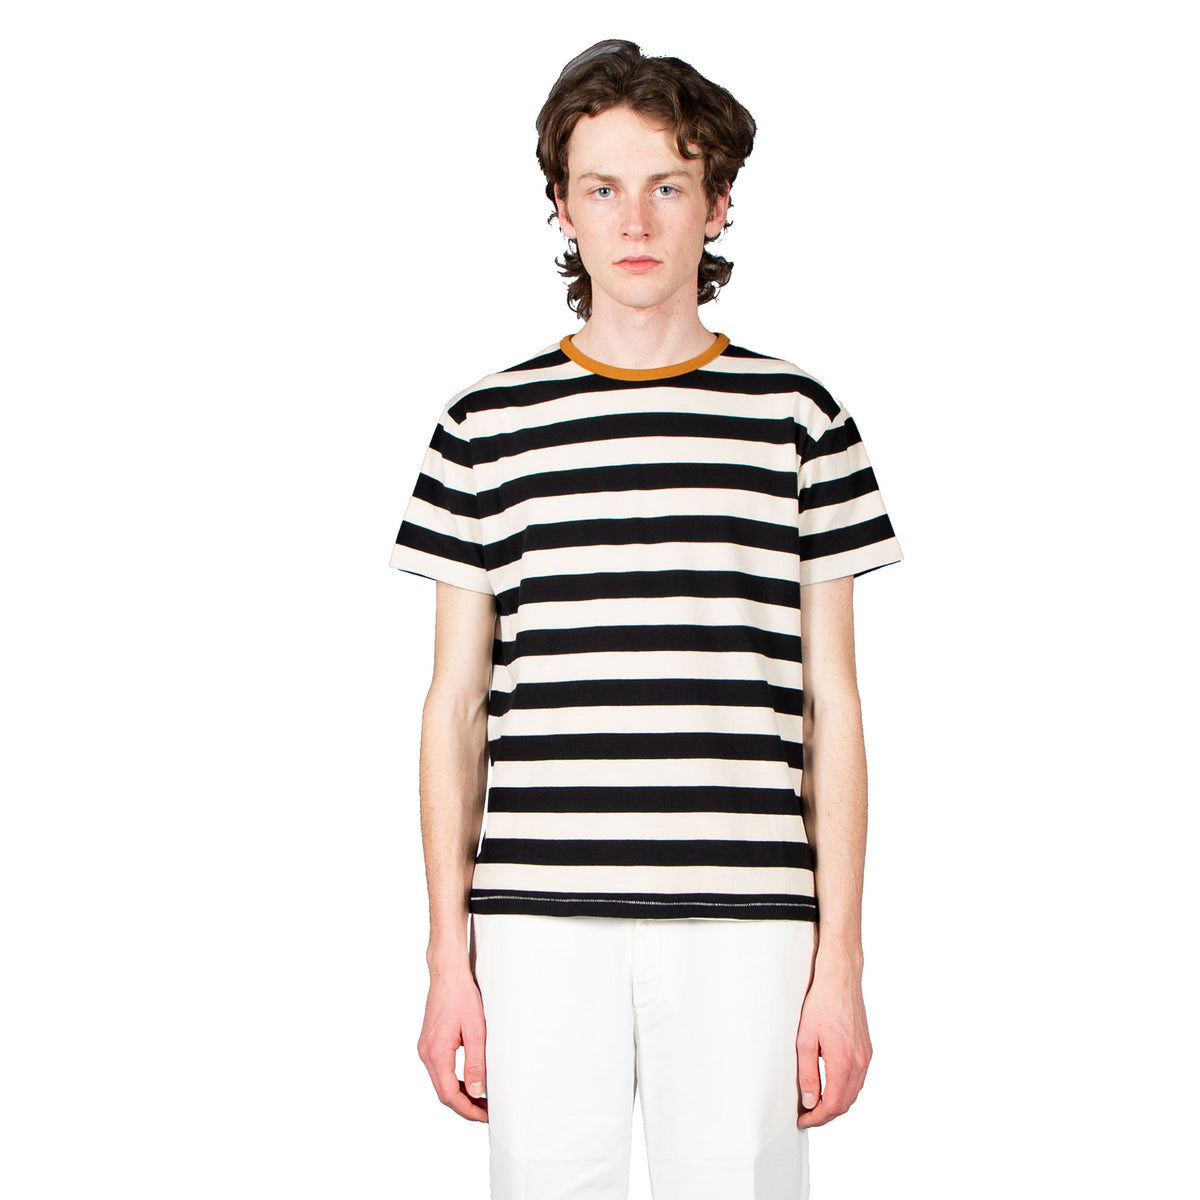 Mojave Tee Stripes - White / Black